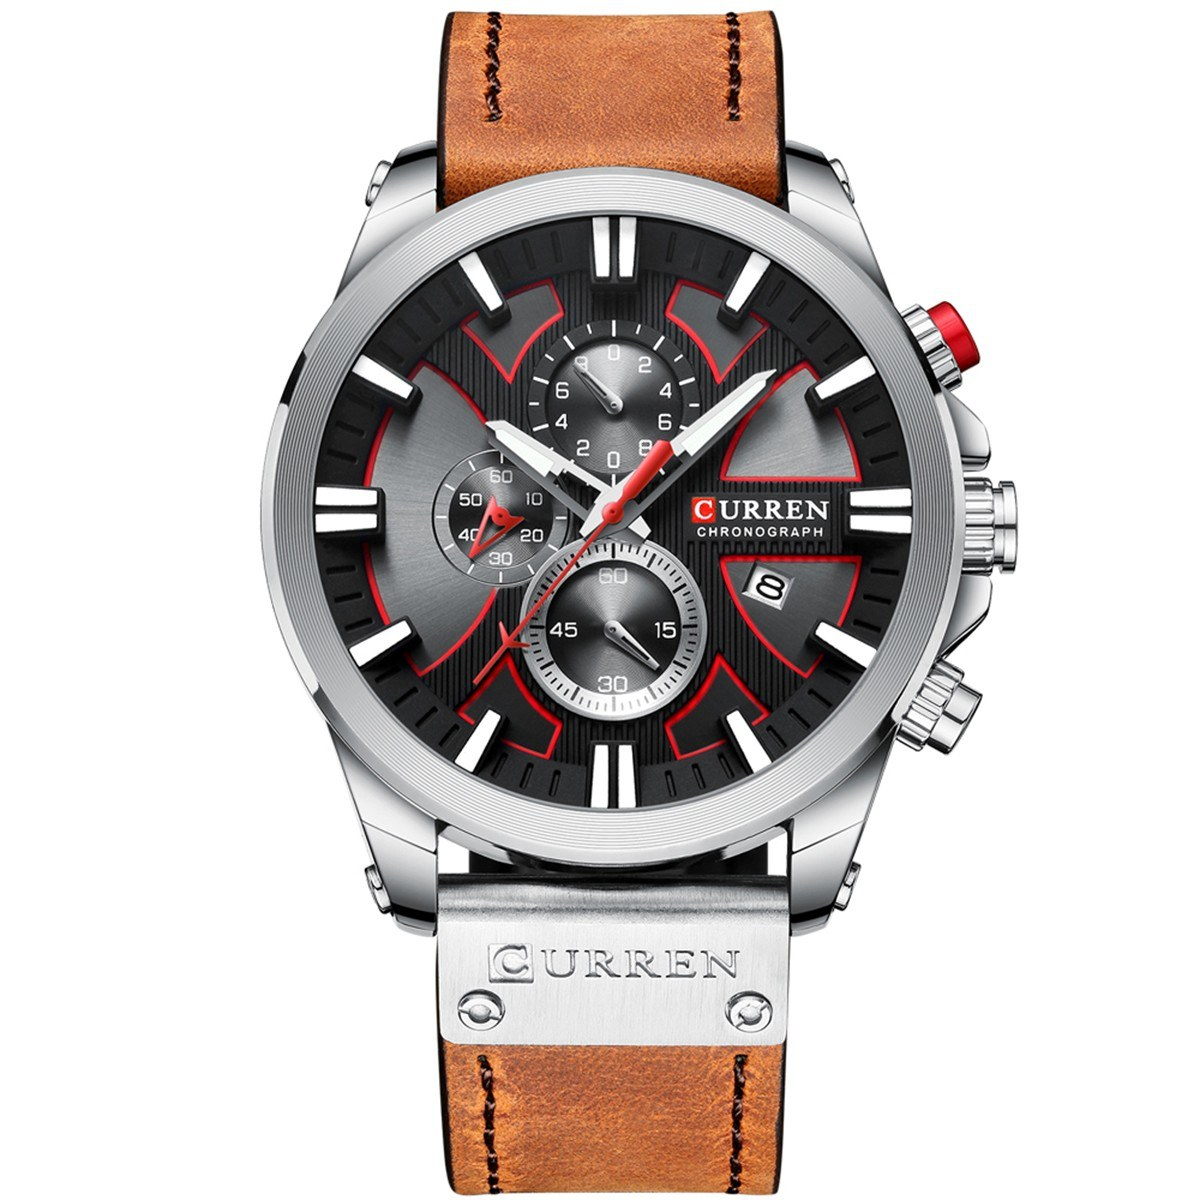 CURREN 8346 Luxury Business Quartz Movement Men Watch 3ATM Waterproof Big Dial Large Face Luminous Sports Wrist Watch Microsecond Second Minute Chronograph Sub-dials Calendar Clock Wristwatch for Male with Imitation Leather Strap Band